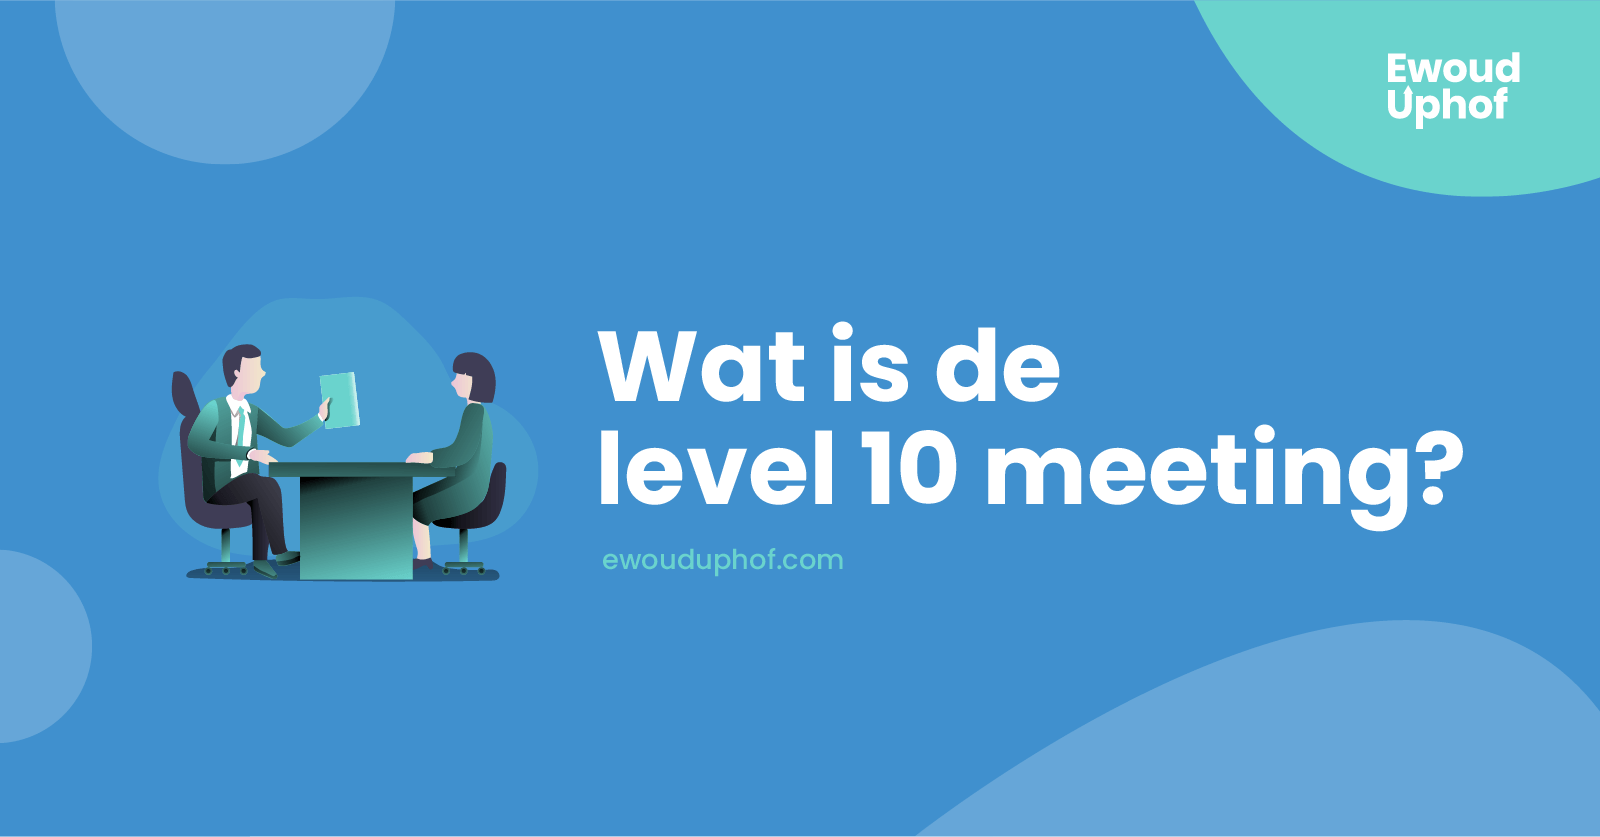 Wat is de level 10 meeting?